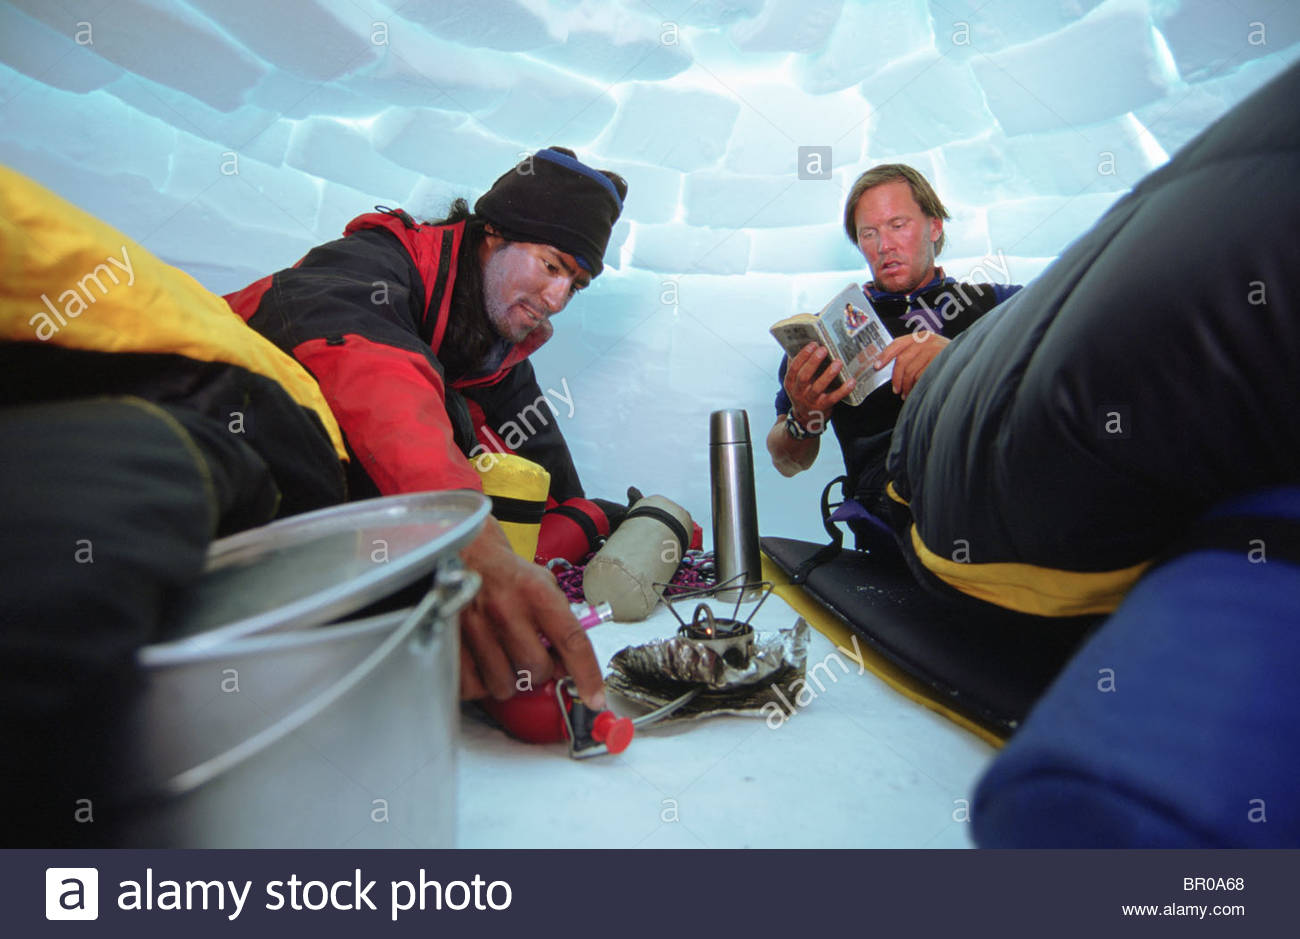 Denali Camp Stove Two Mountaineers In An Igloo Light Up A Camp Stove Stock Photo